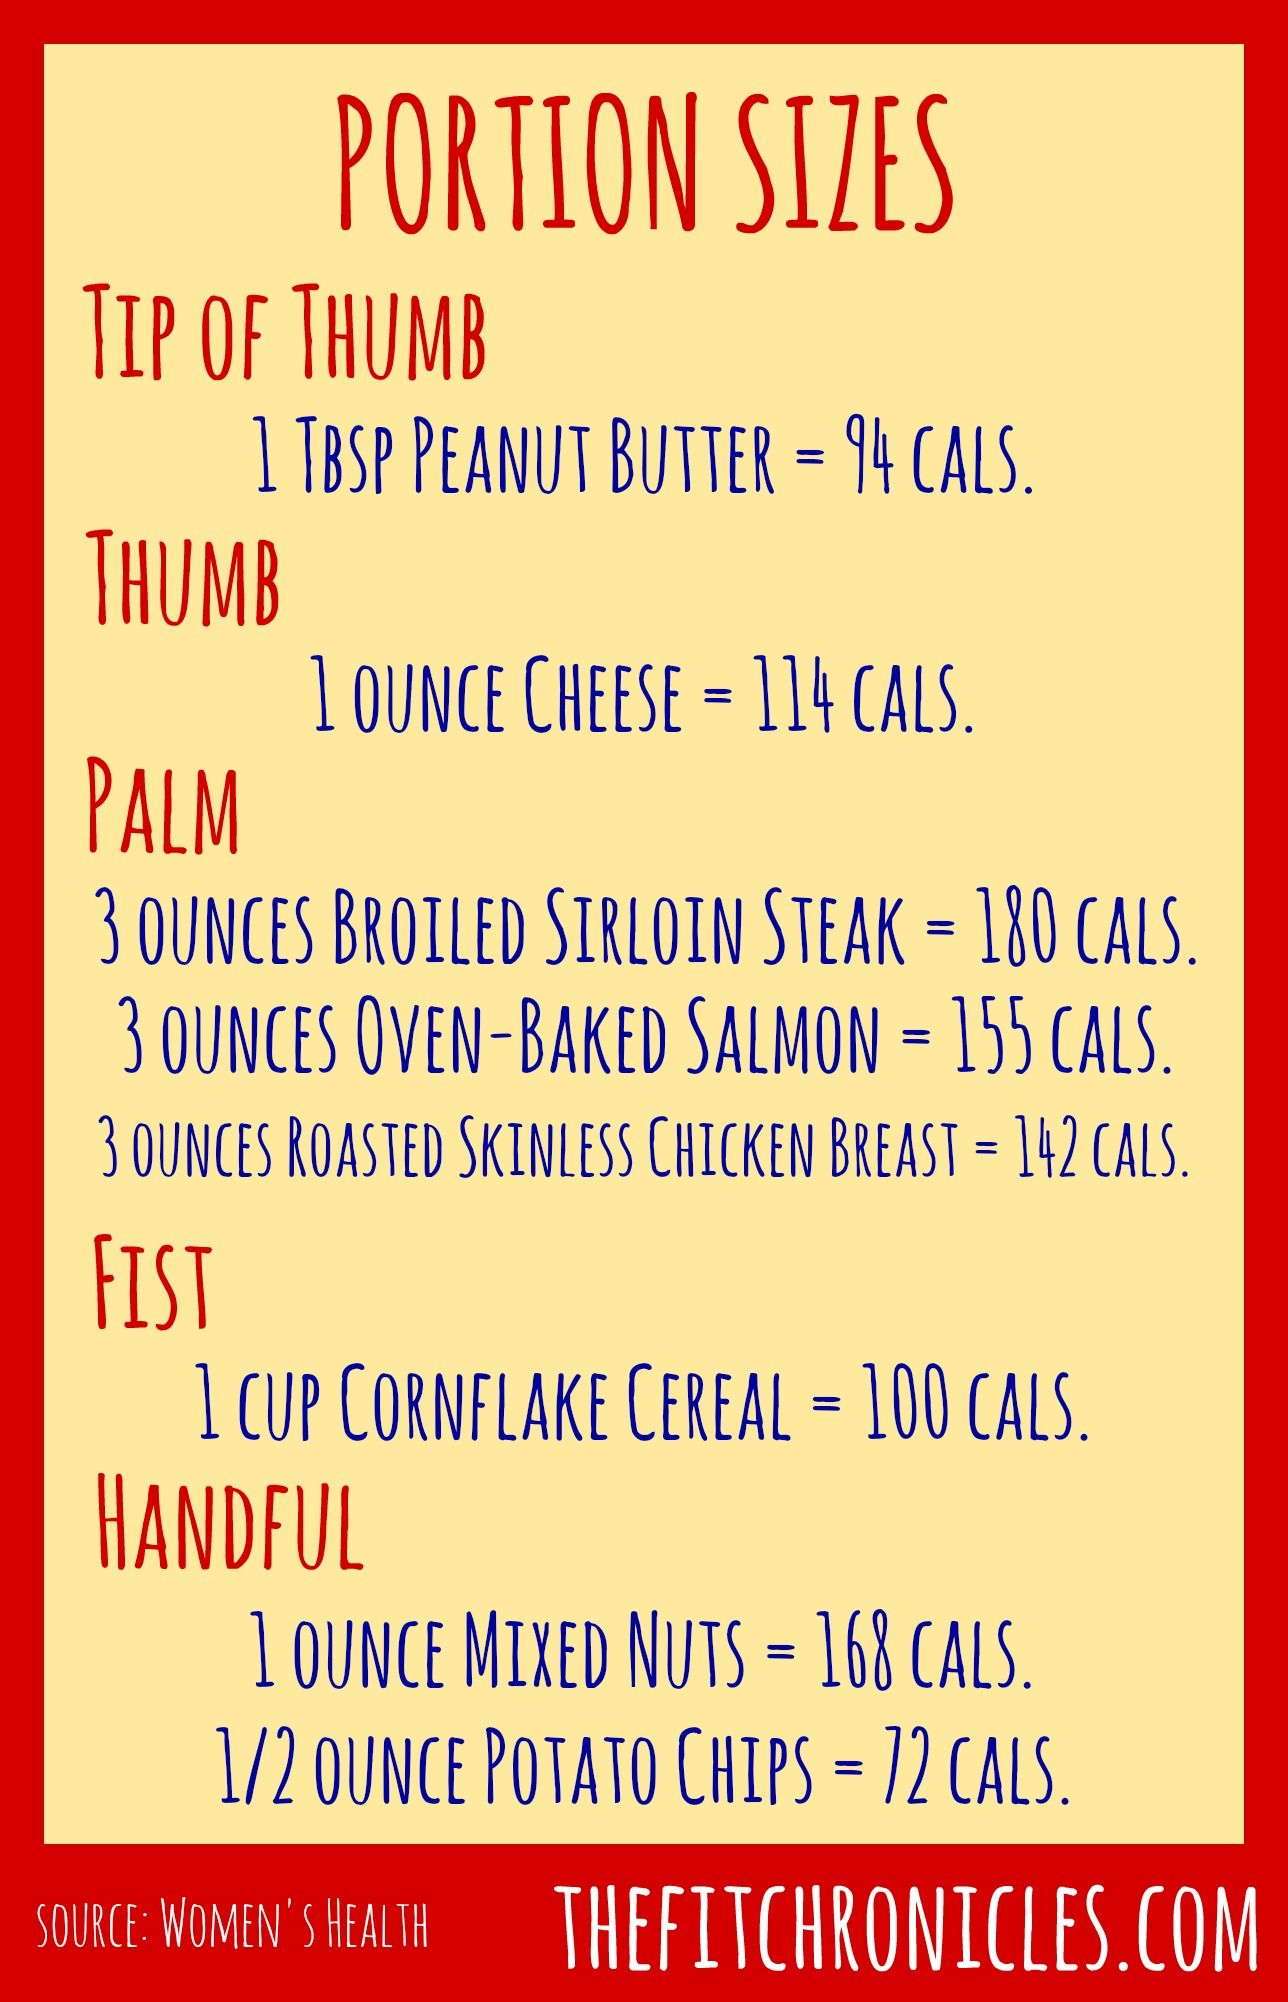 Cheat Sheet: Portion Sizes | The Fit Chronicles http://thefitchronicles.com/2014/05/02/cheat-sheet-portion-sizes/